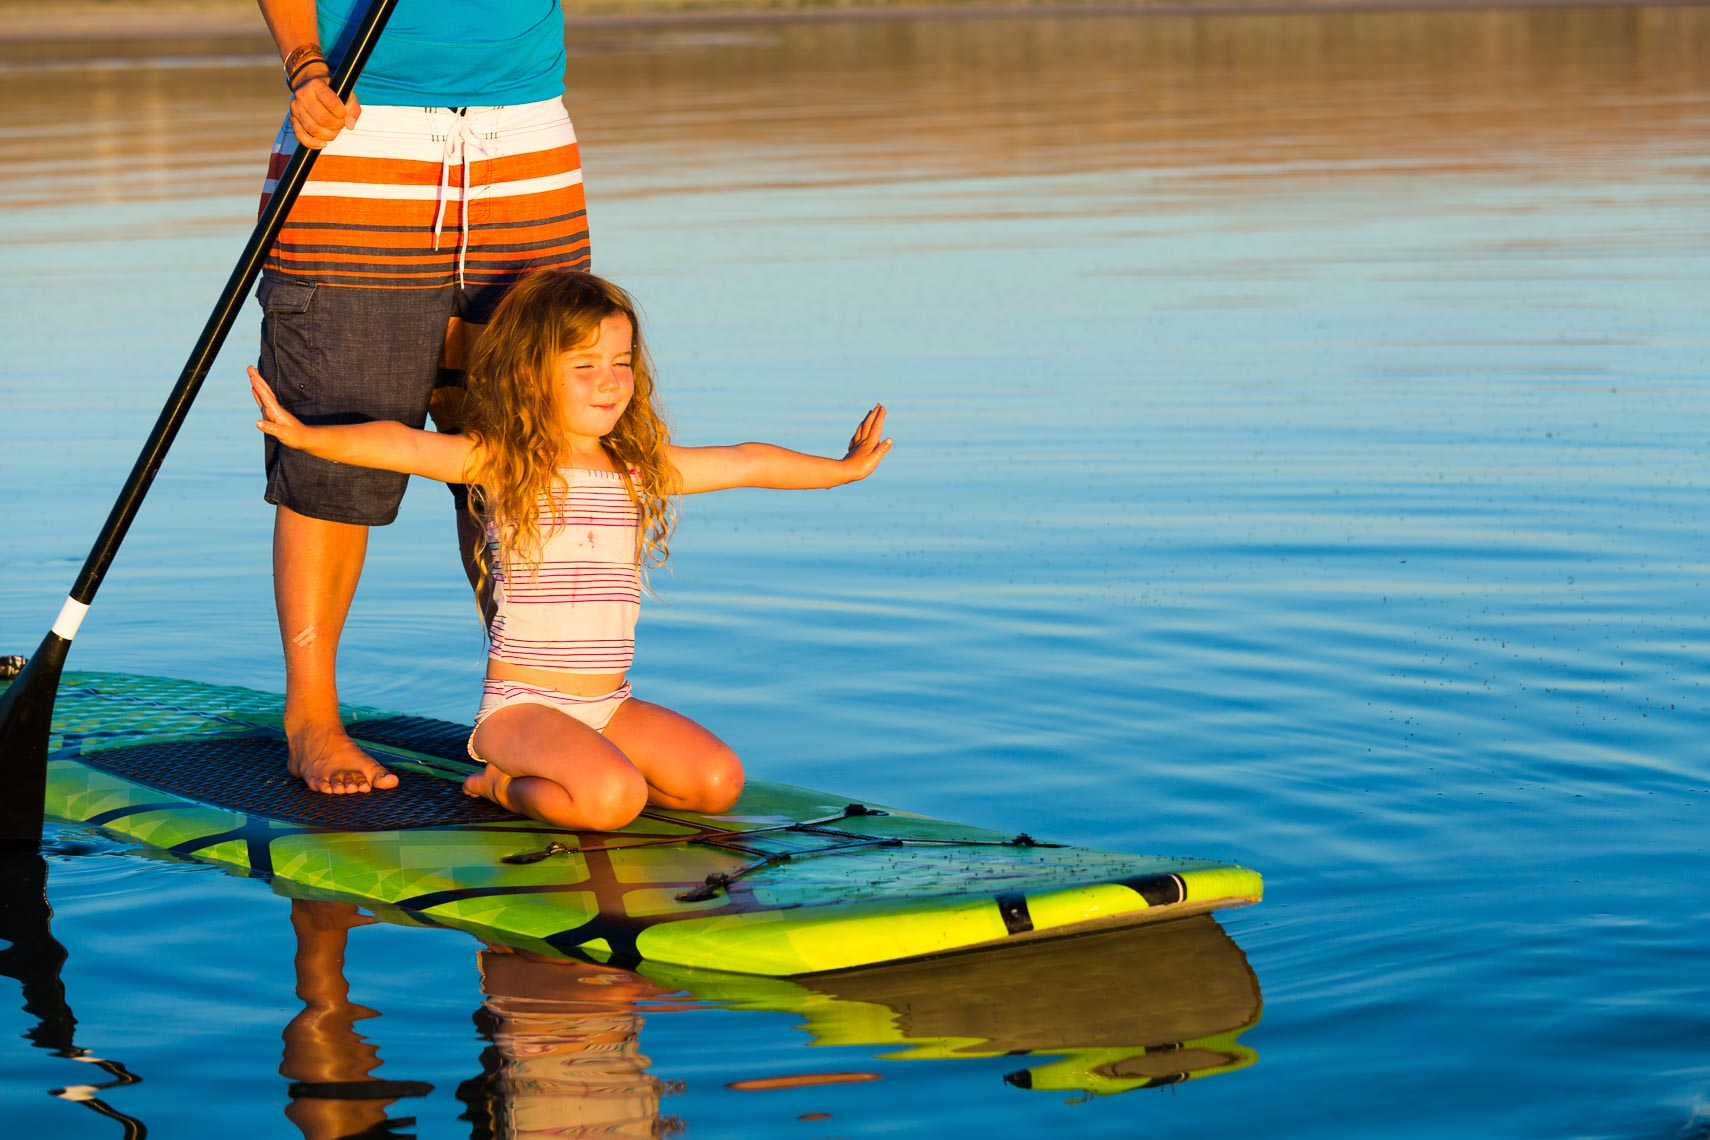 Young Girl on Paddle Board | Photographer Michael DeYoung